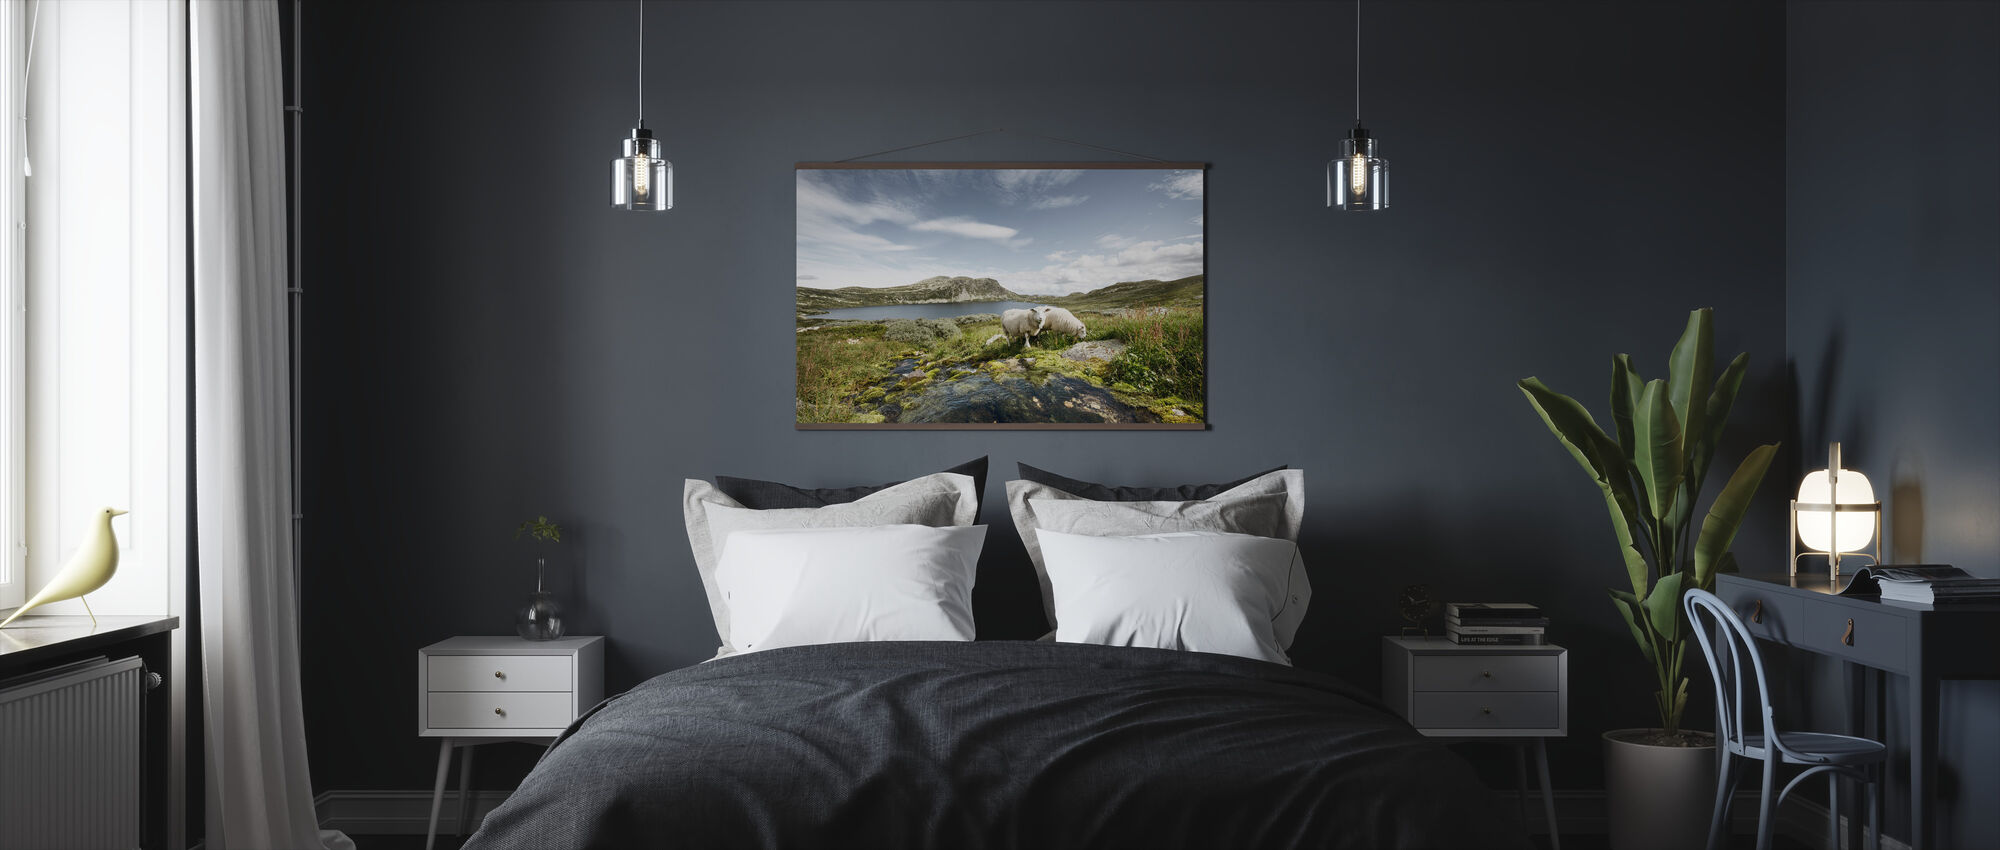 Sheep by Lake in Norway - Poster - Bedroom